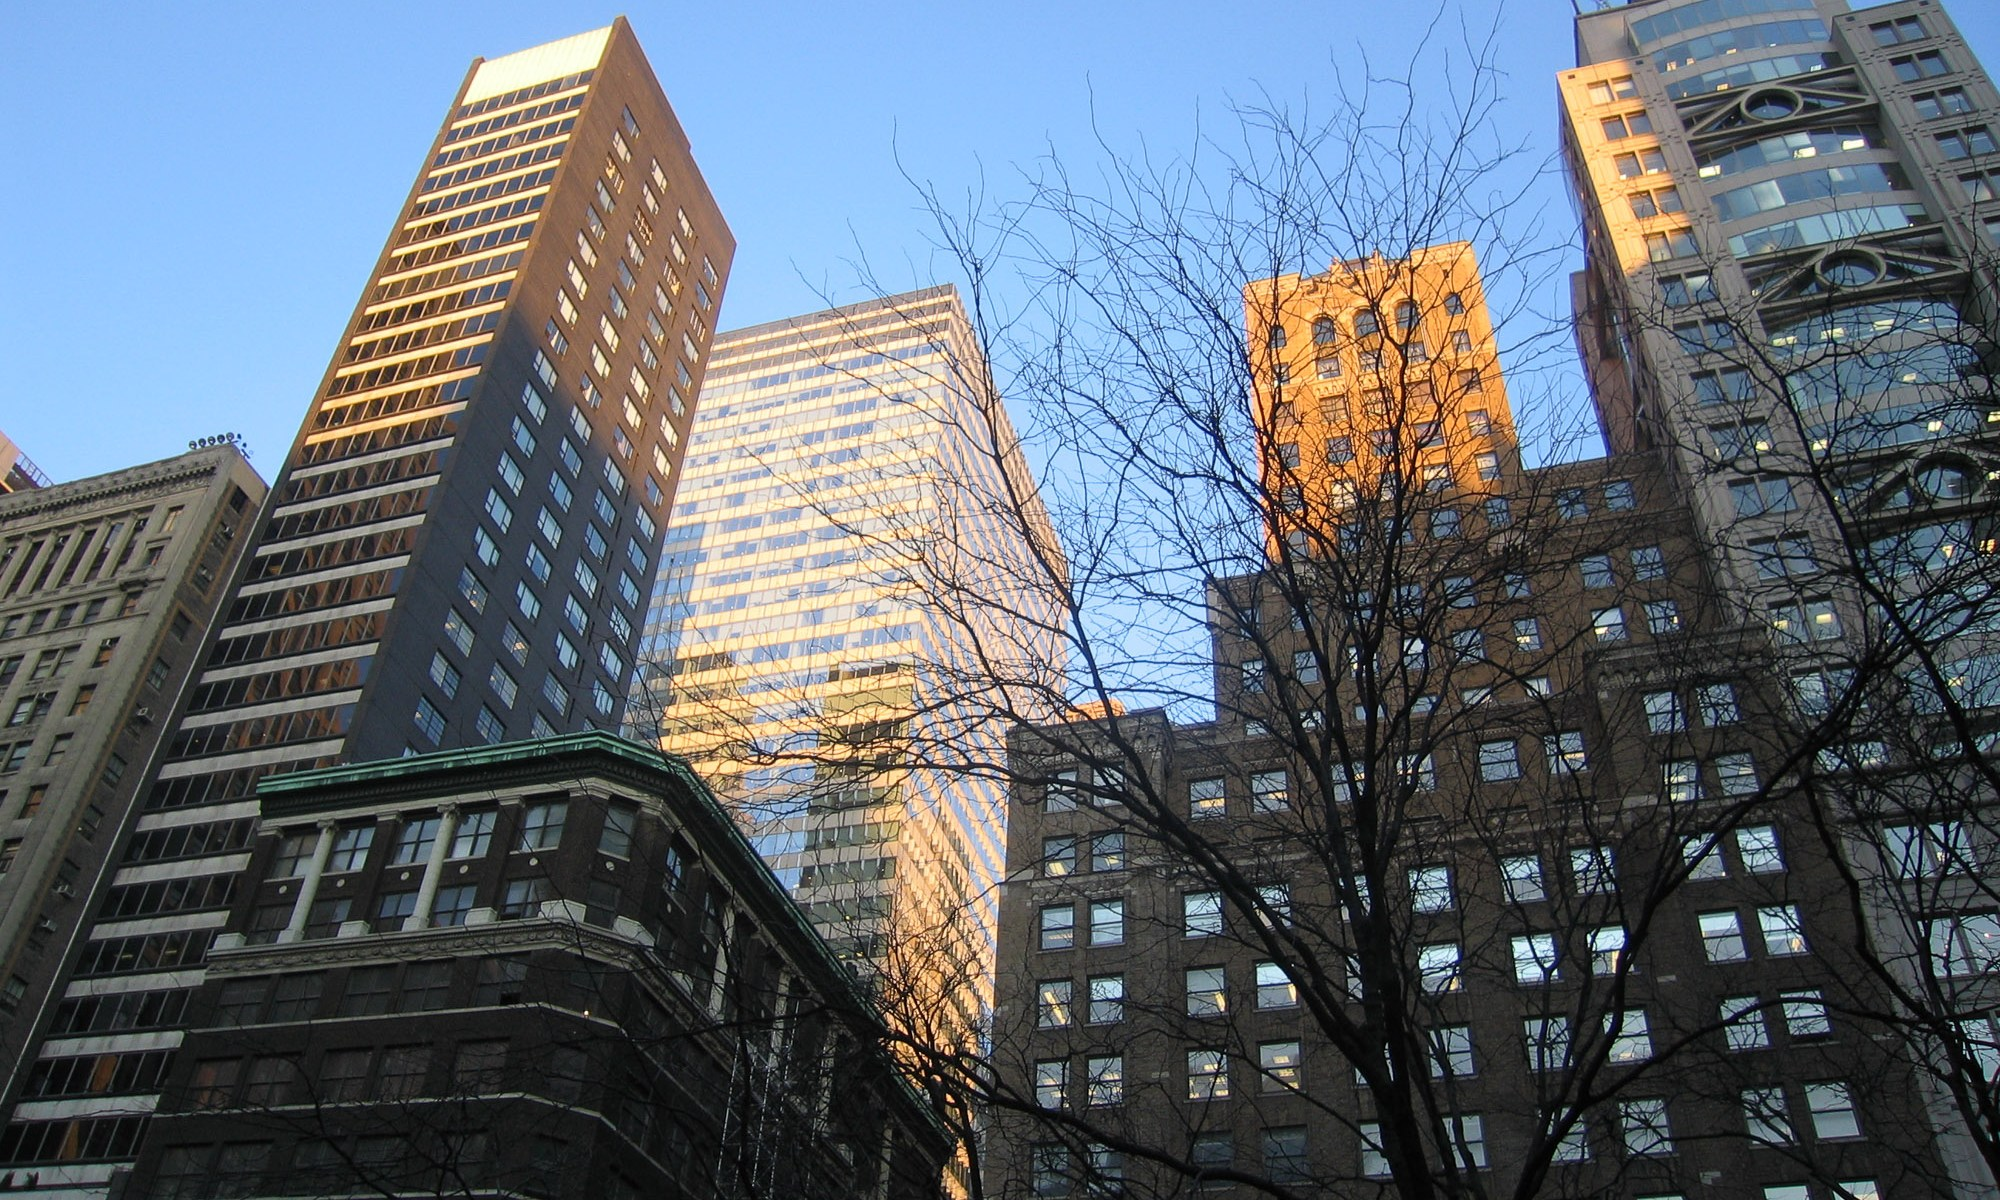 5th Ave Skyscrappers New York